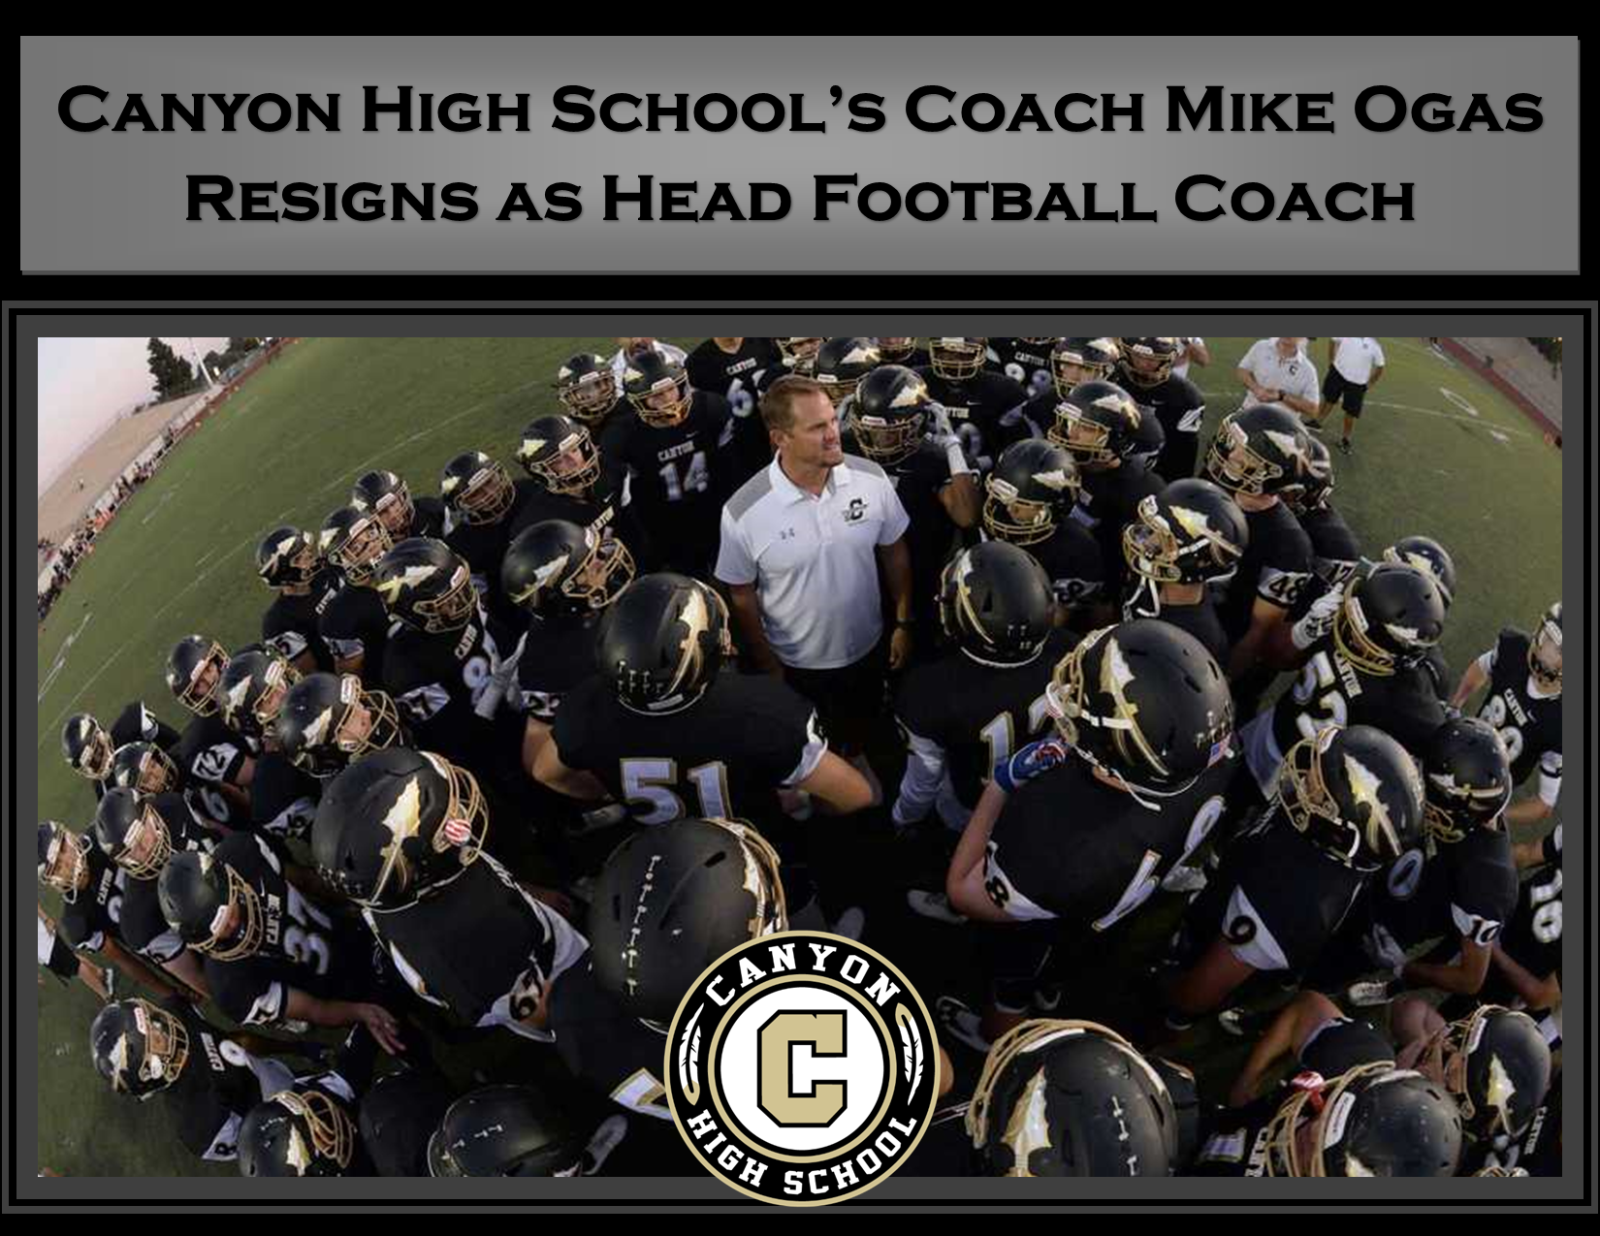 Canyon High School's Coach Mike Ogas Resigns as Head Football Coach